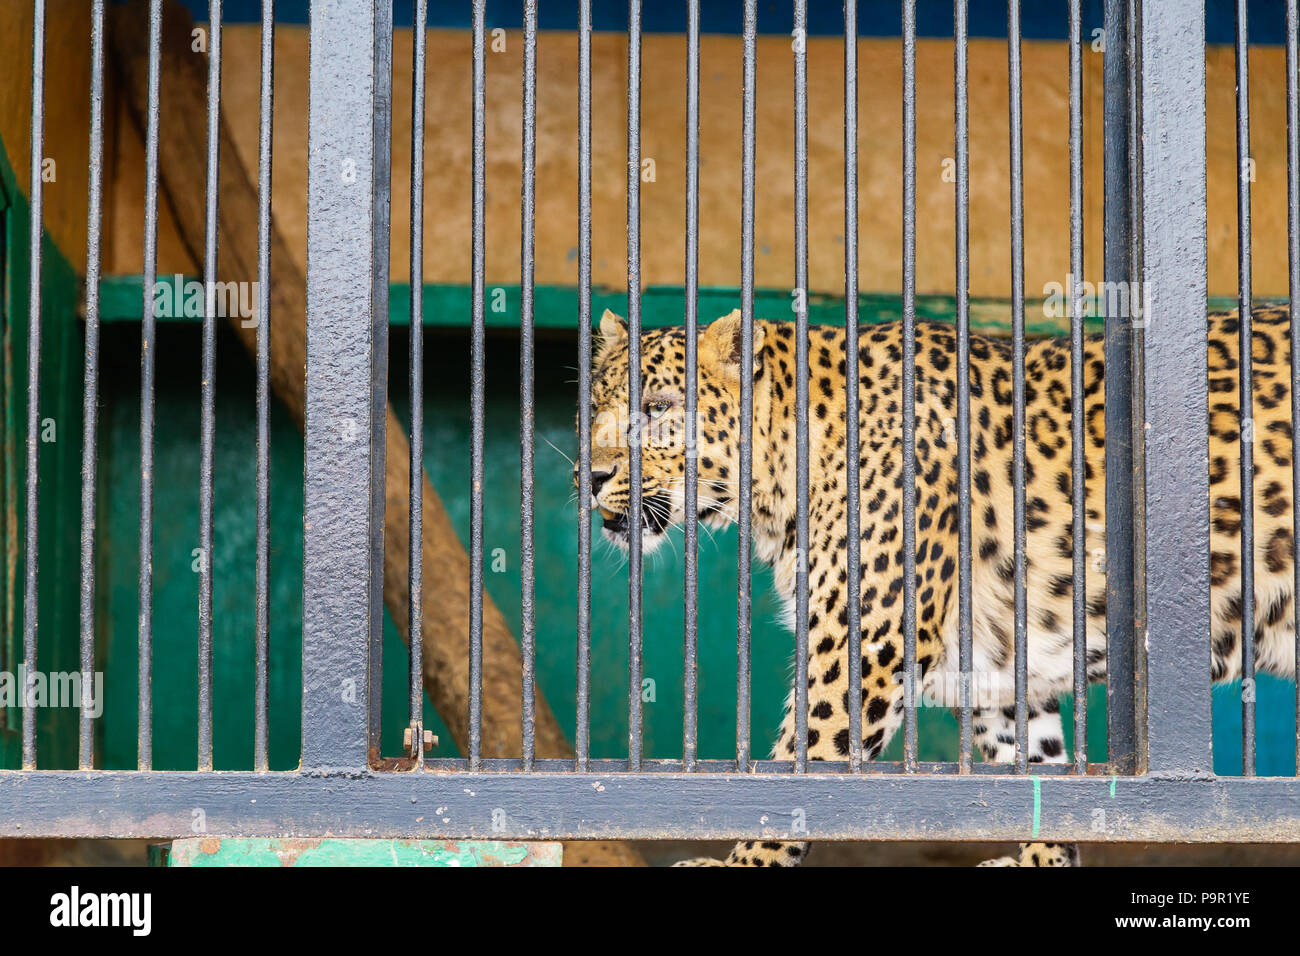 Sorrowful cheetah looking from the cage.Cheetah in the cage - Stock Image